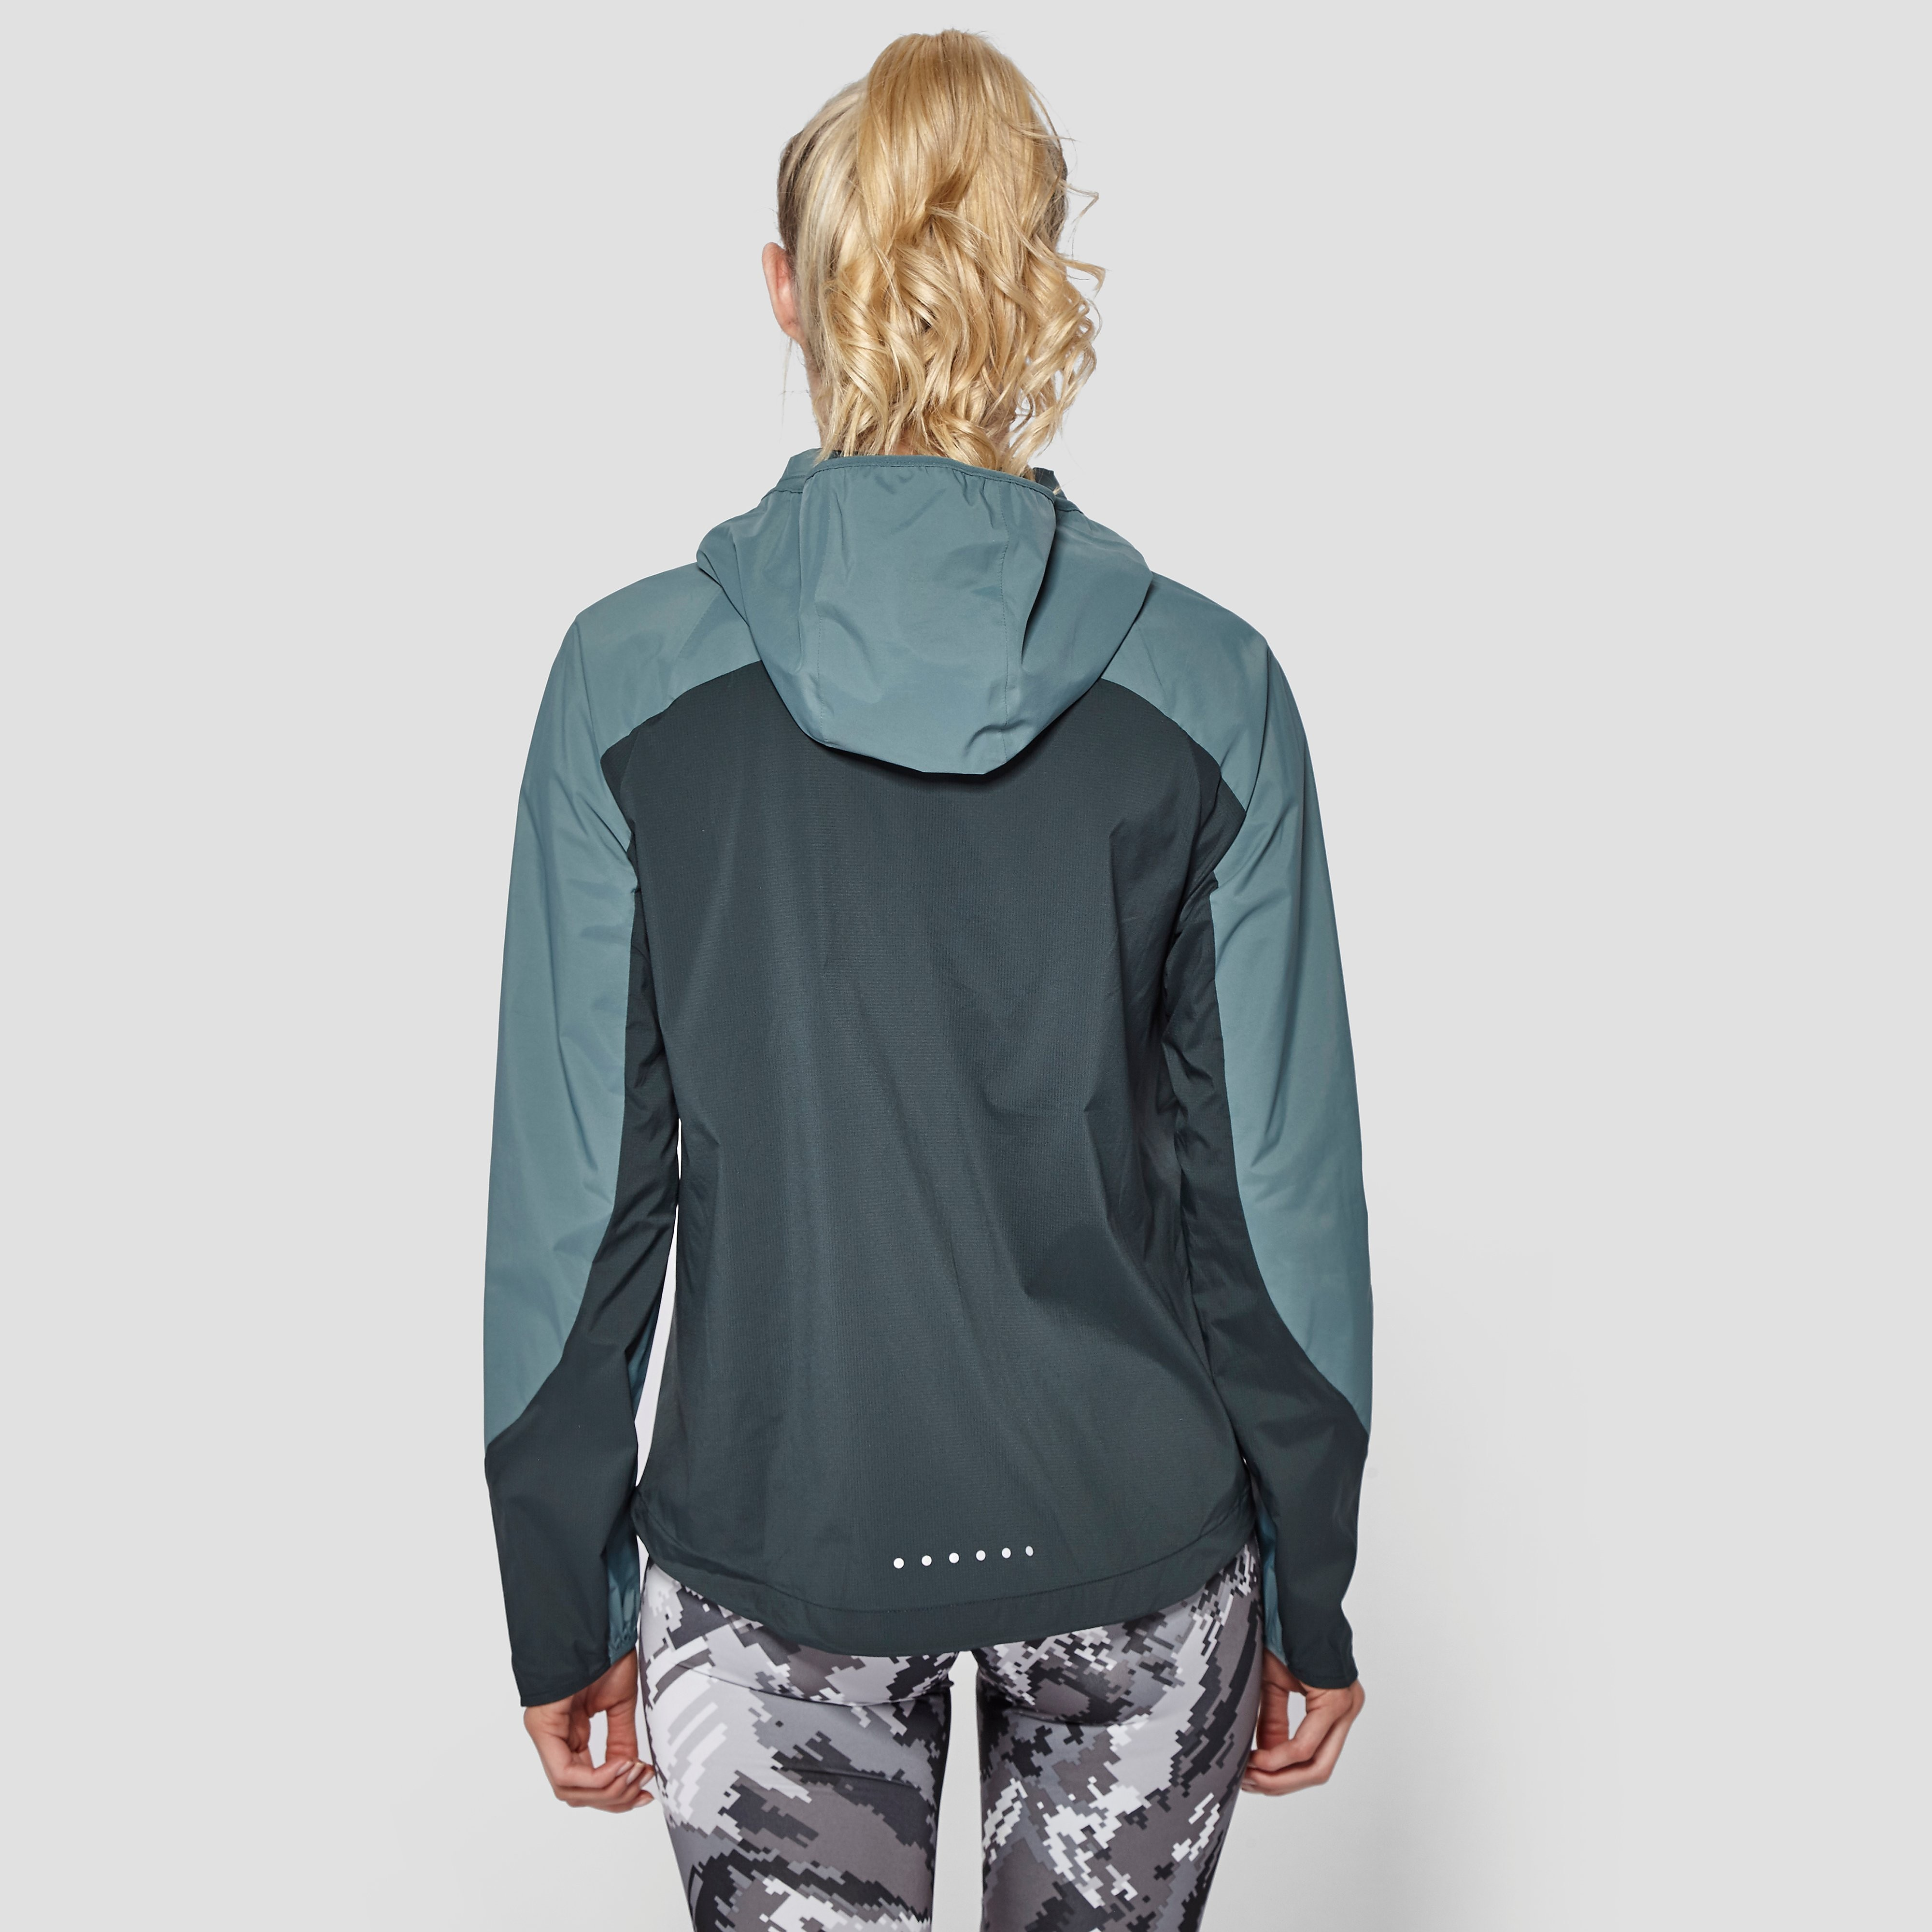 Nike Hypershield Women's Running Jacket